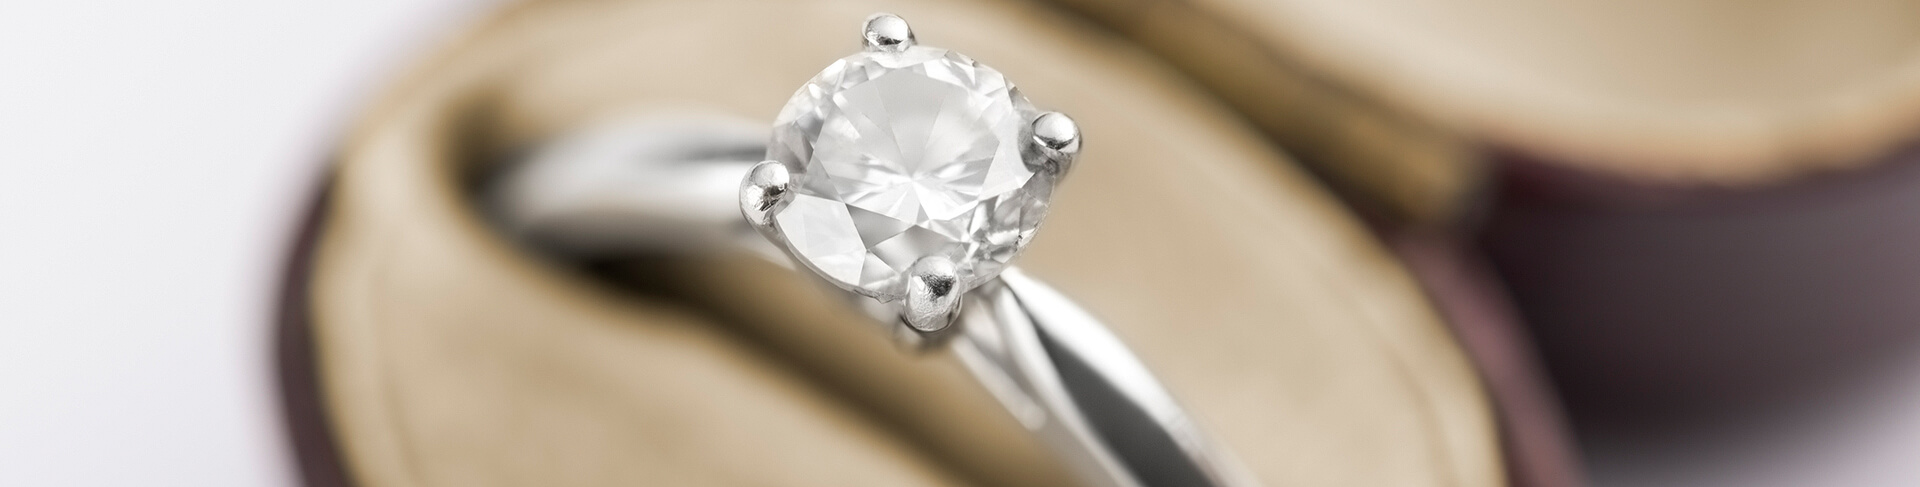 bloomsbury rose halo collections in rings gold diamond sustainable ethical ltd manor ring engagement